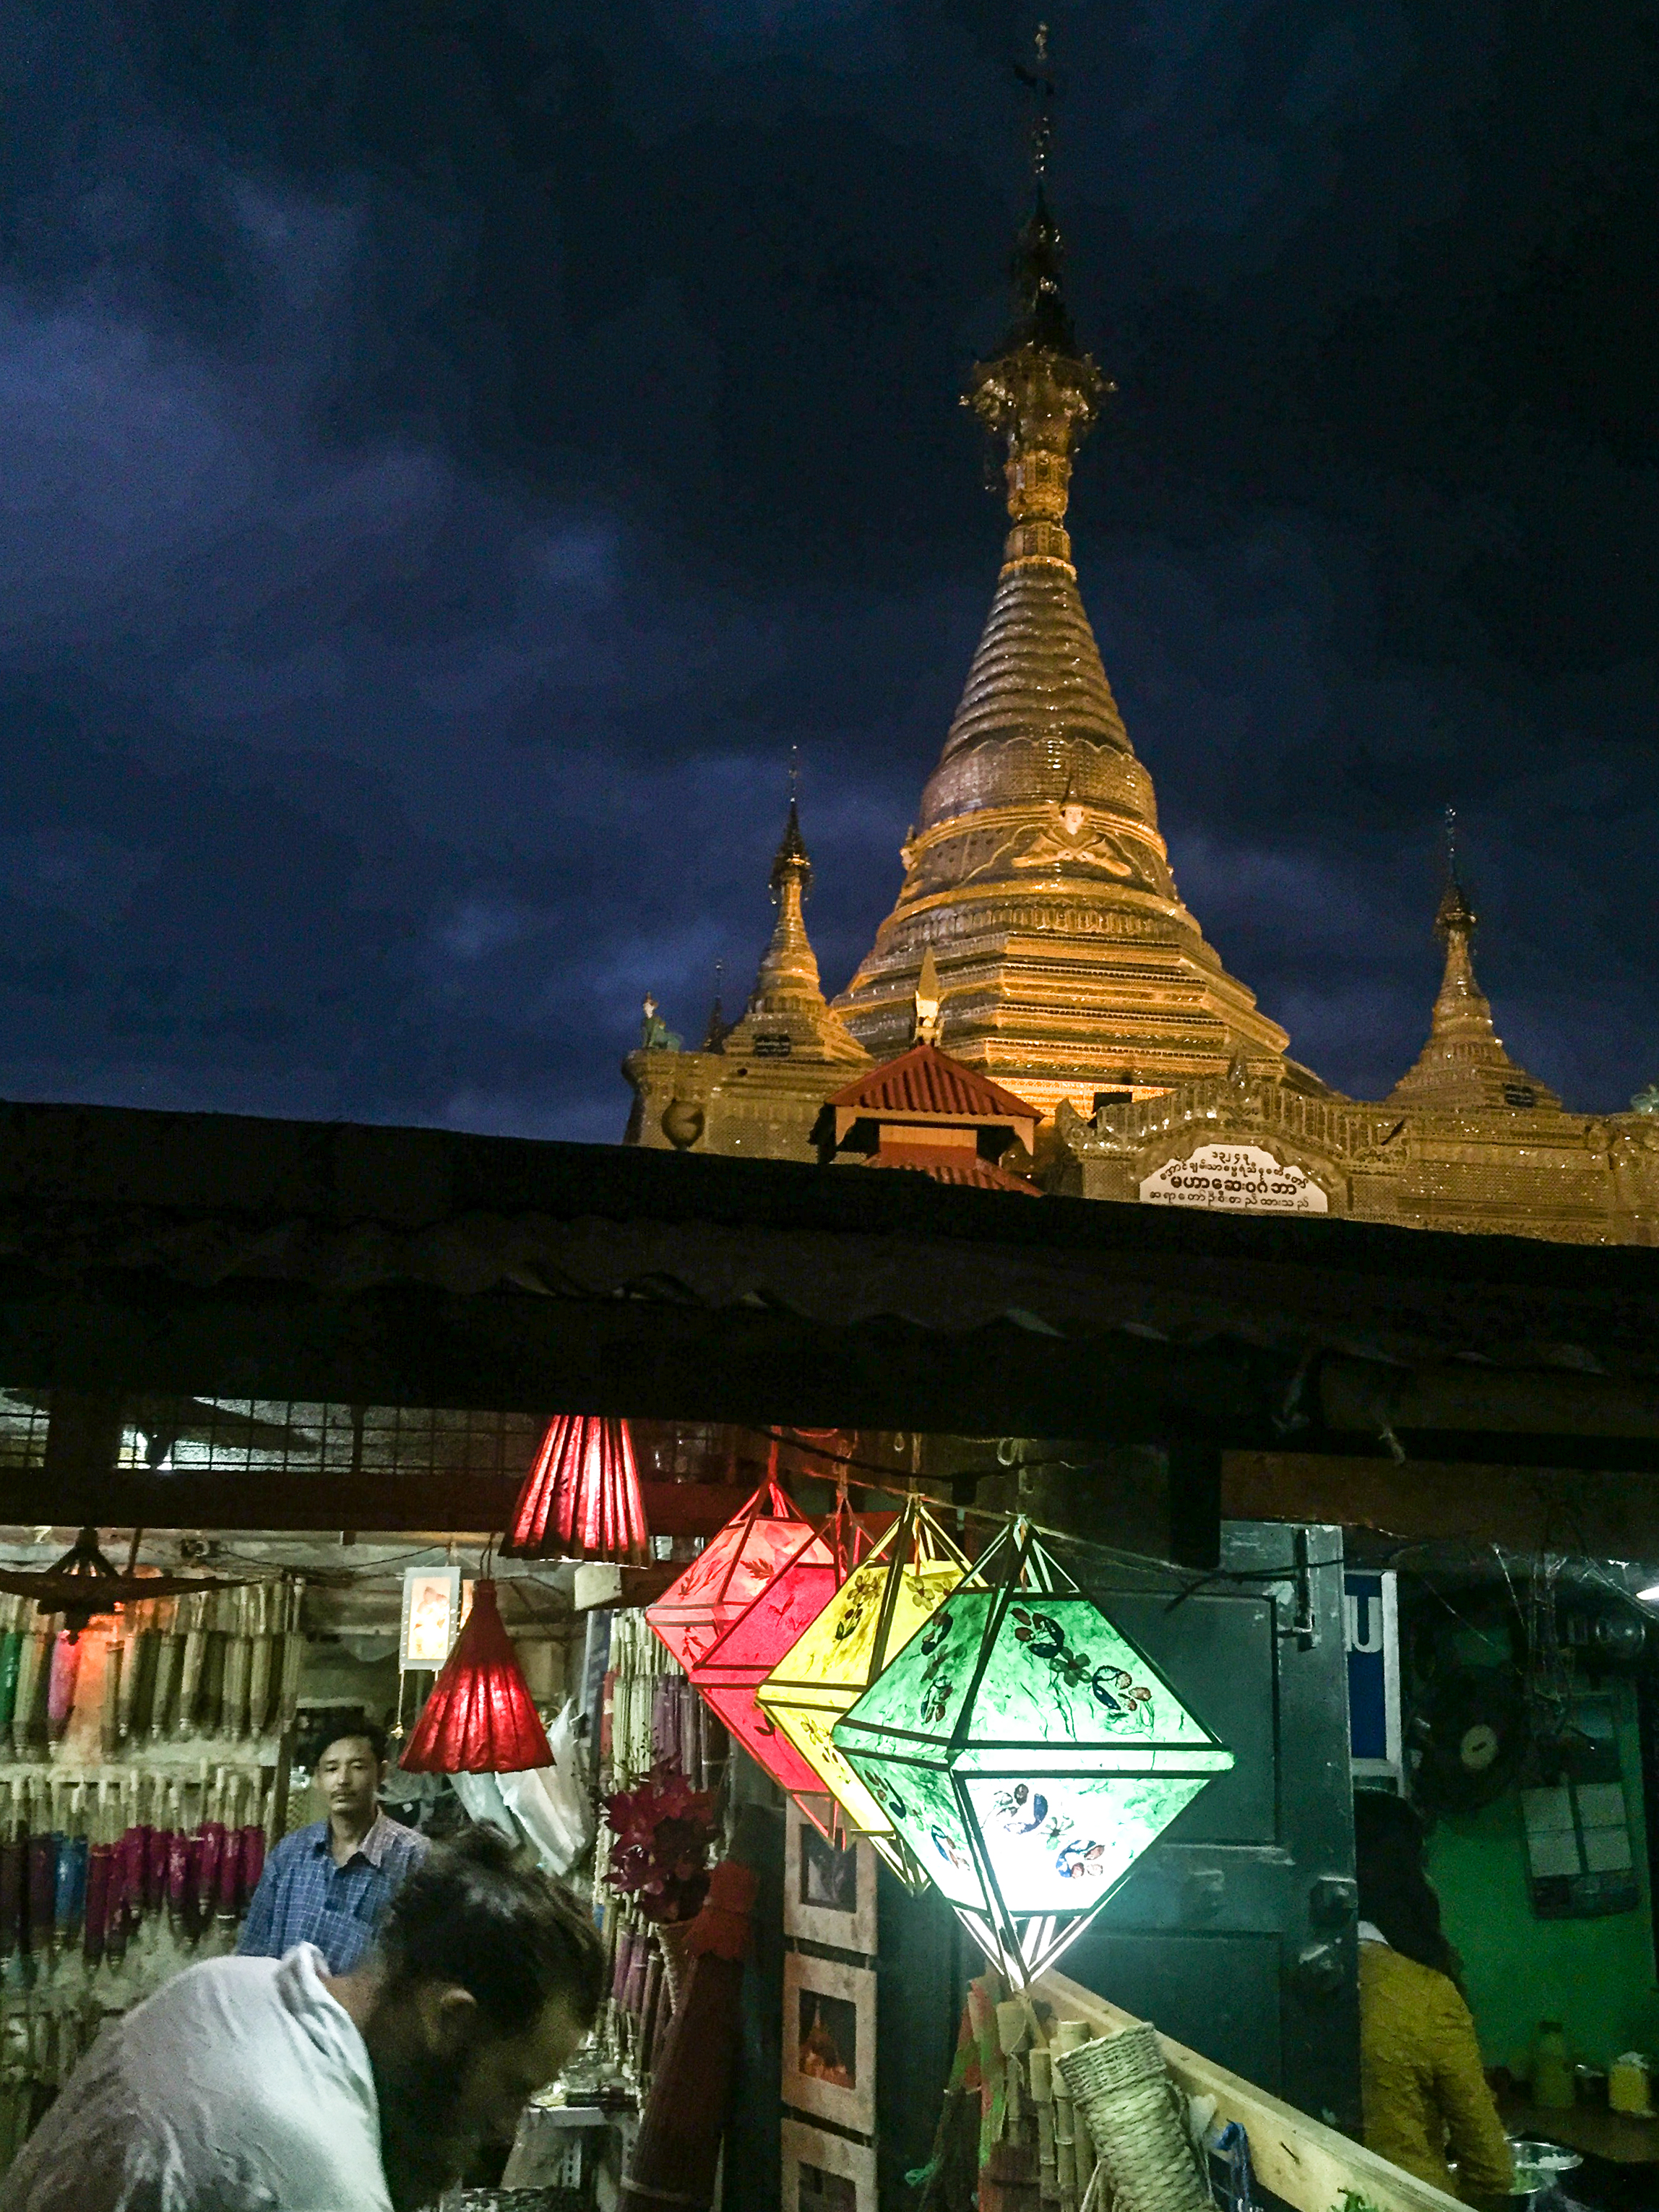 Working on the edge of the pagoda.